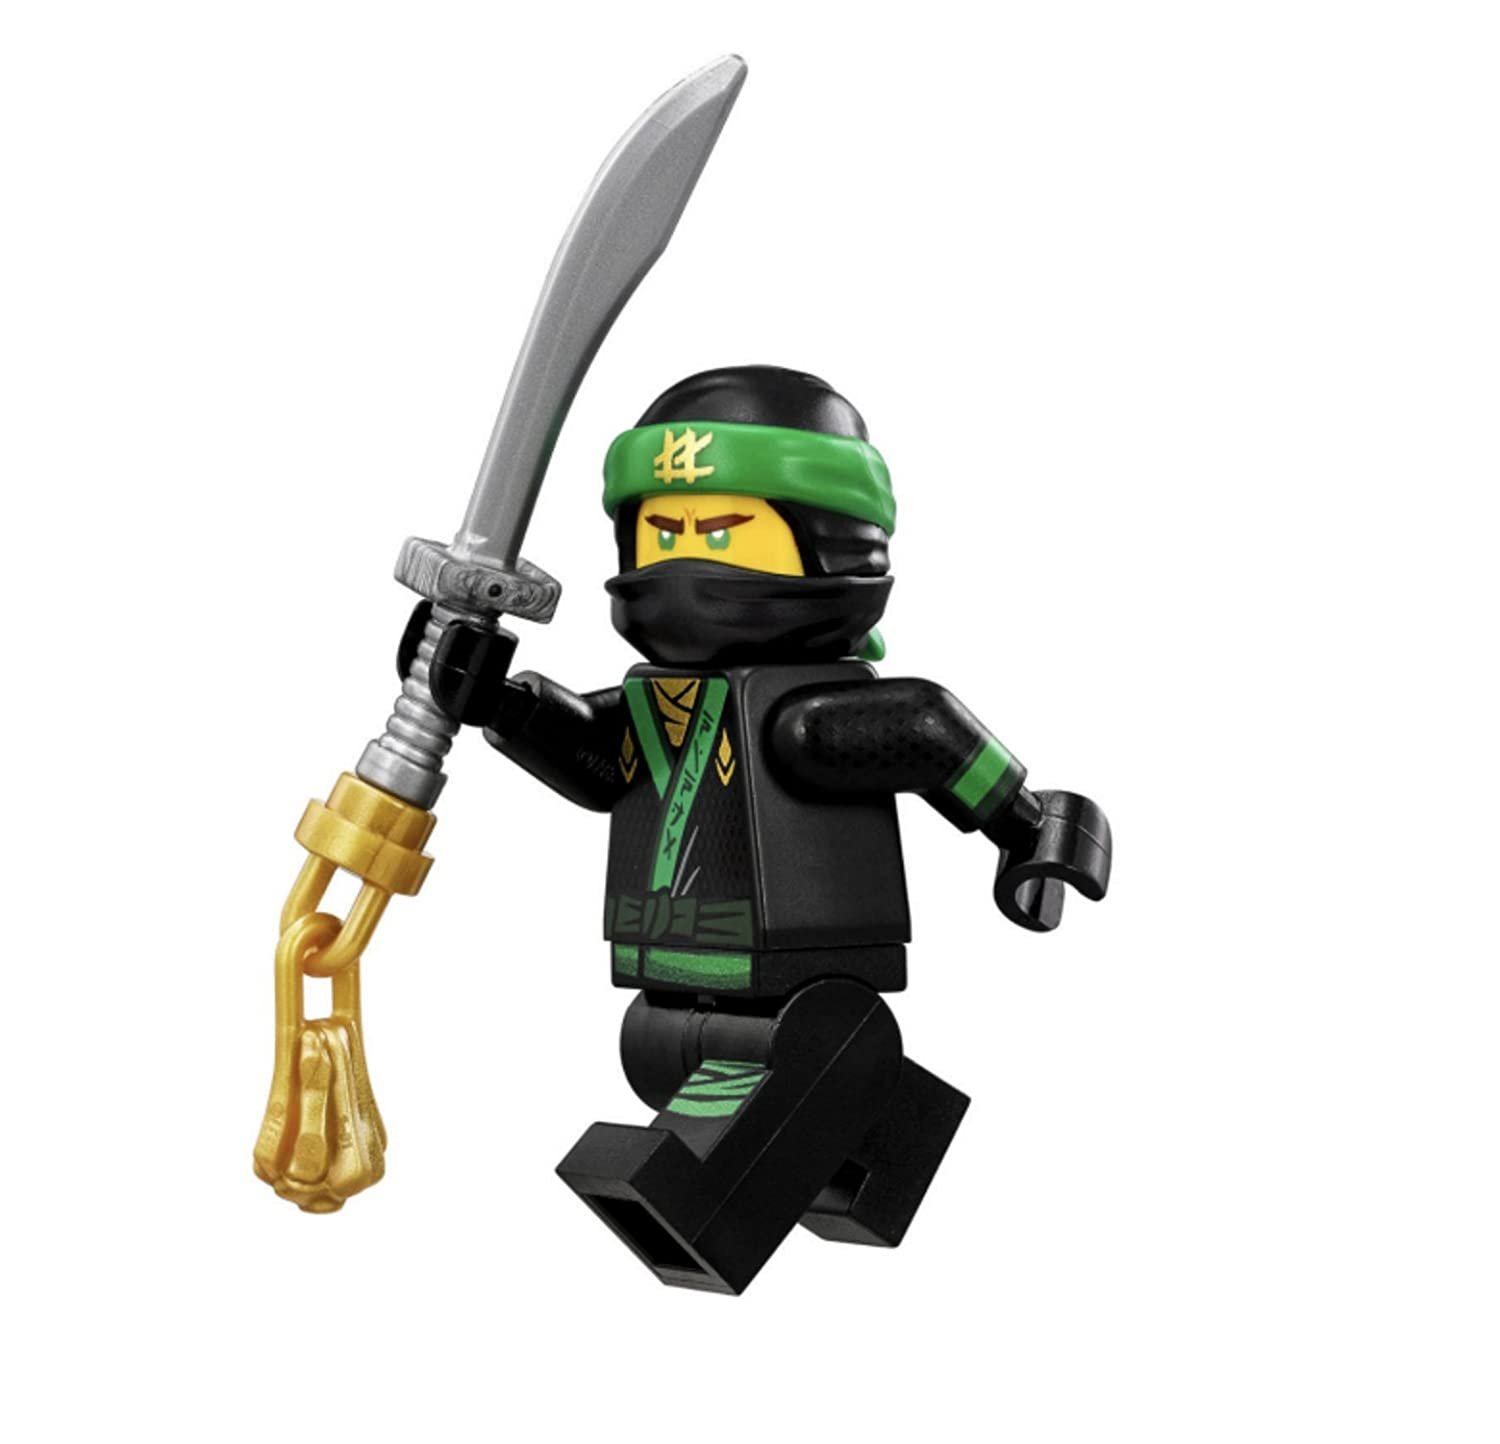 NEW Lego Ninjago Ninja Minifig GOLD WEAPON SET w//Minifigure Golden Dragon Sword